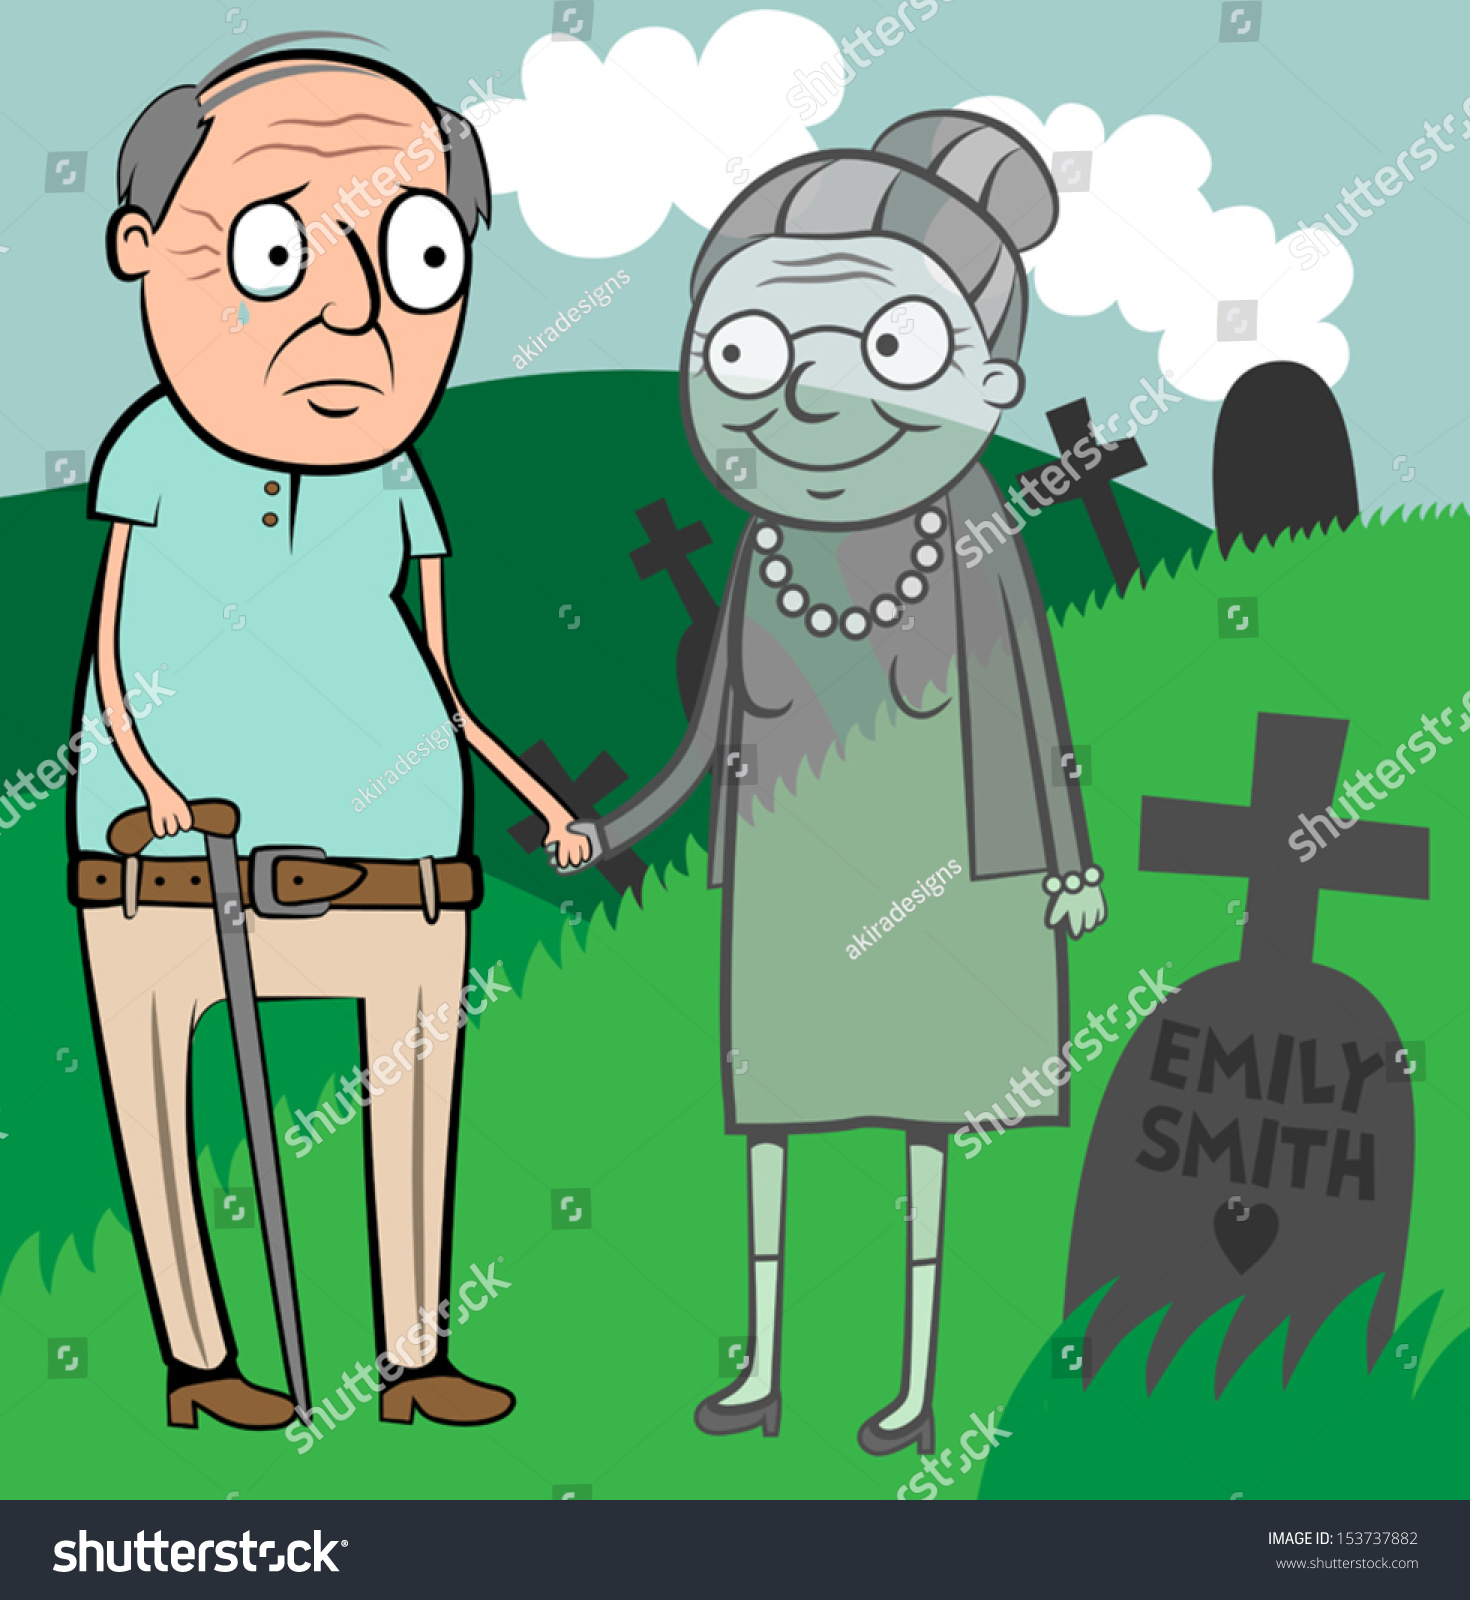 the death of an old old The dying process - the process of dying in old age starts with cell death learn the process of dying, from the beginning to the agonal phase to the very end.